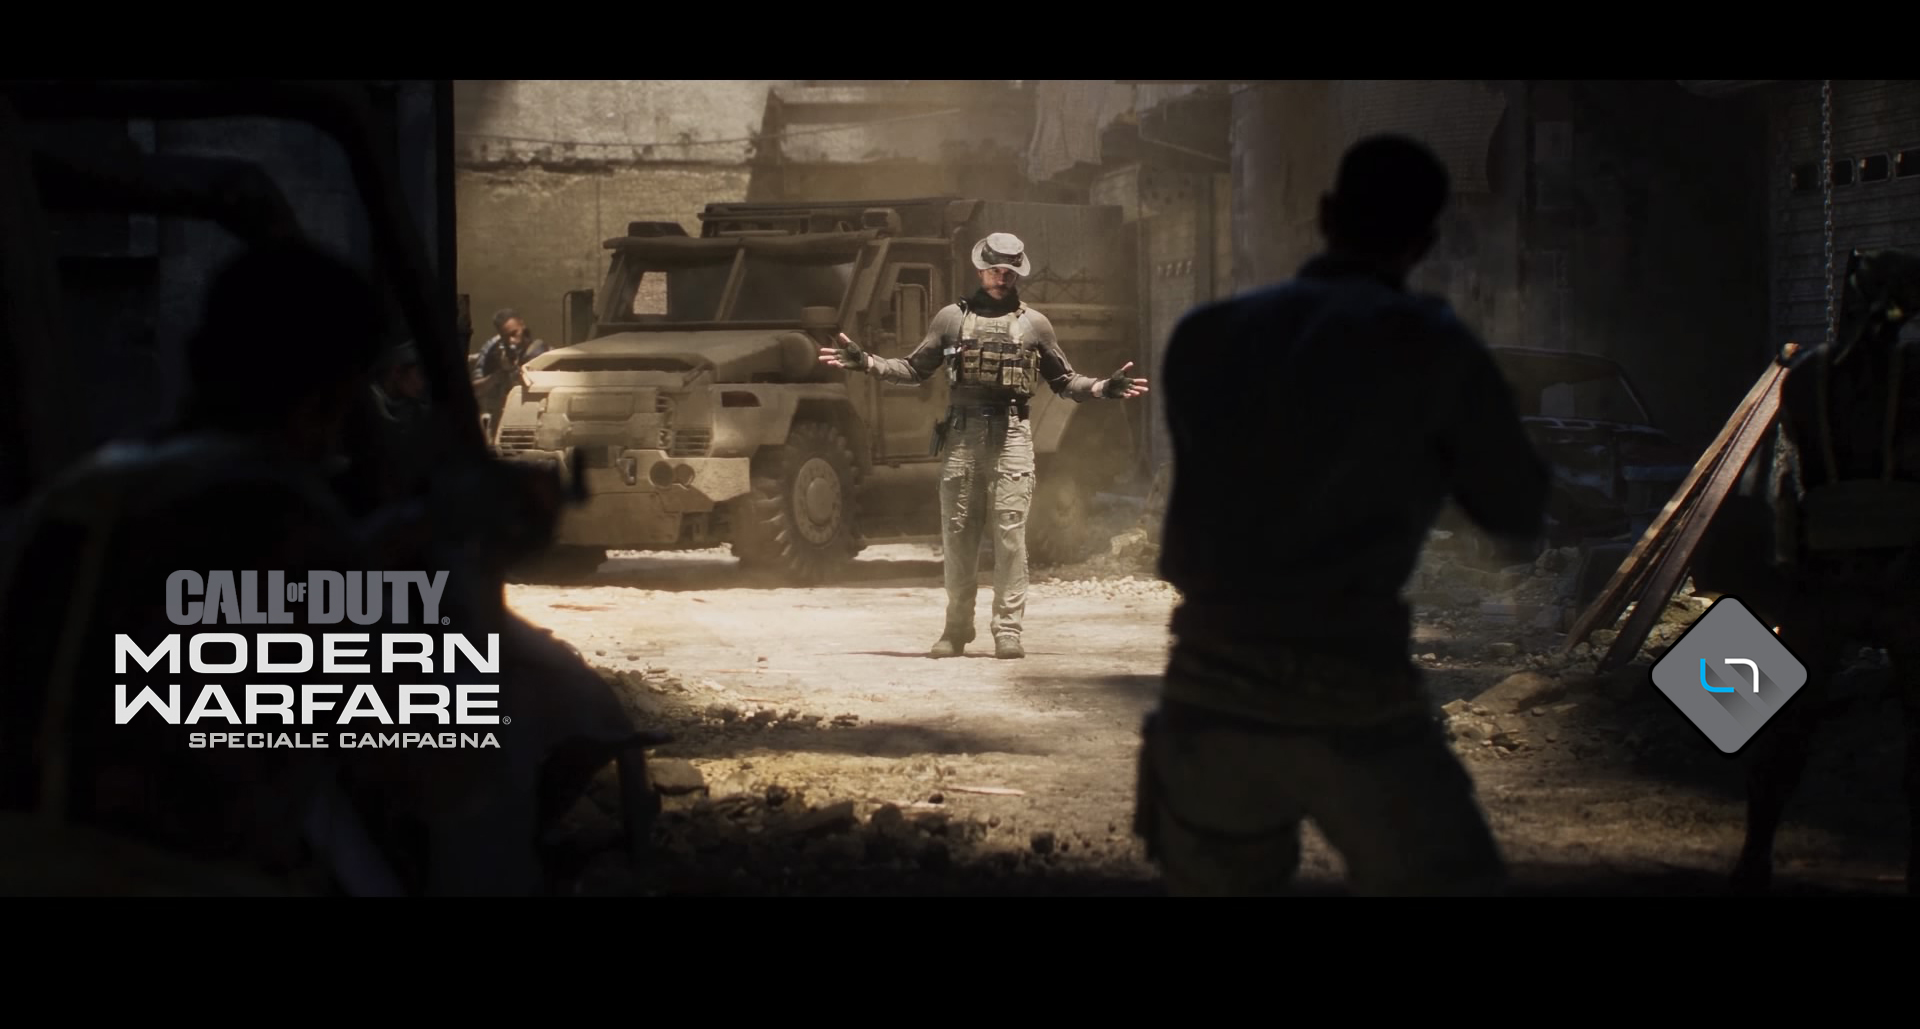 Call of Duty: Modern Warfare Speciale Campagna